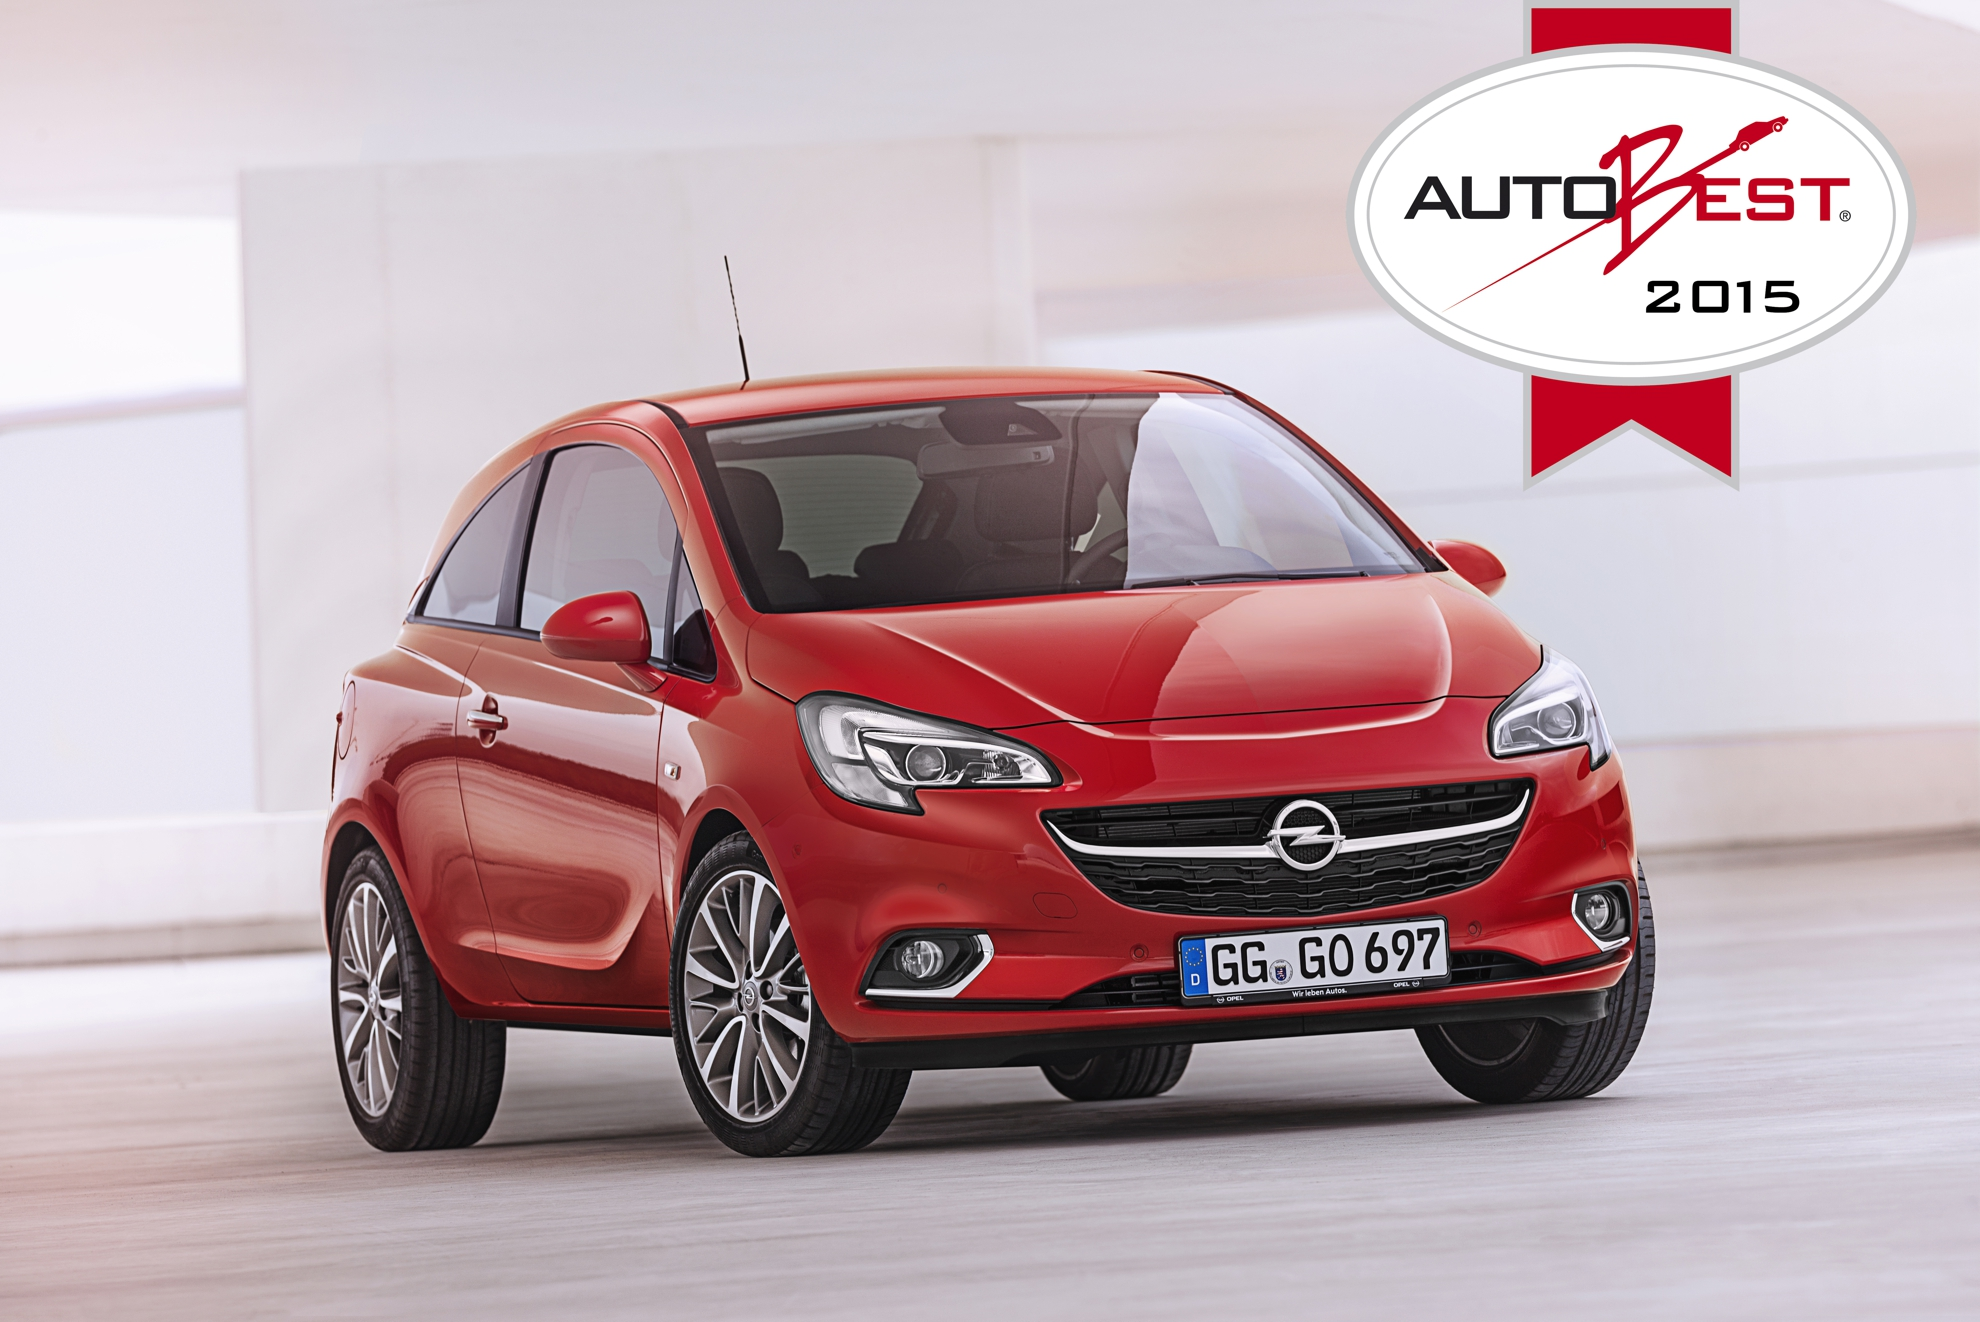 opel corsa wins prestigious autobest 2015 award. Black Bedroom Furniture Sets. Home Design Ideas